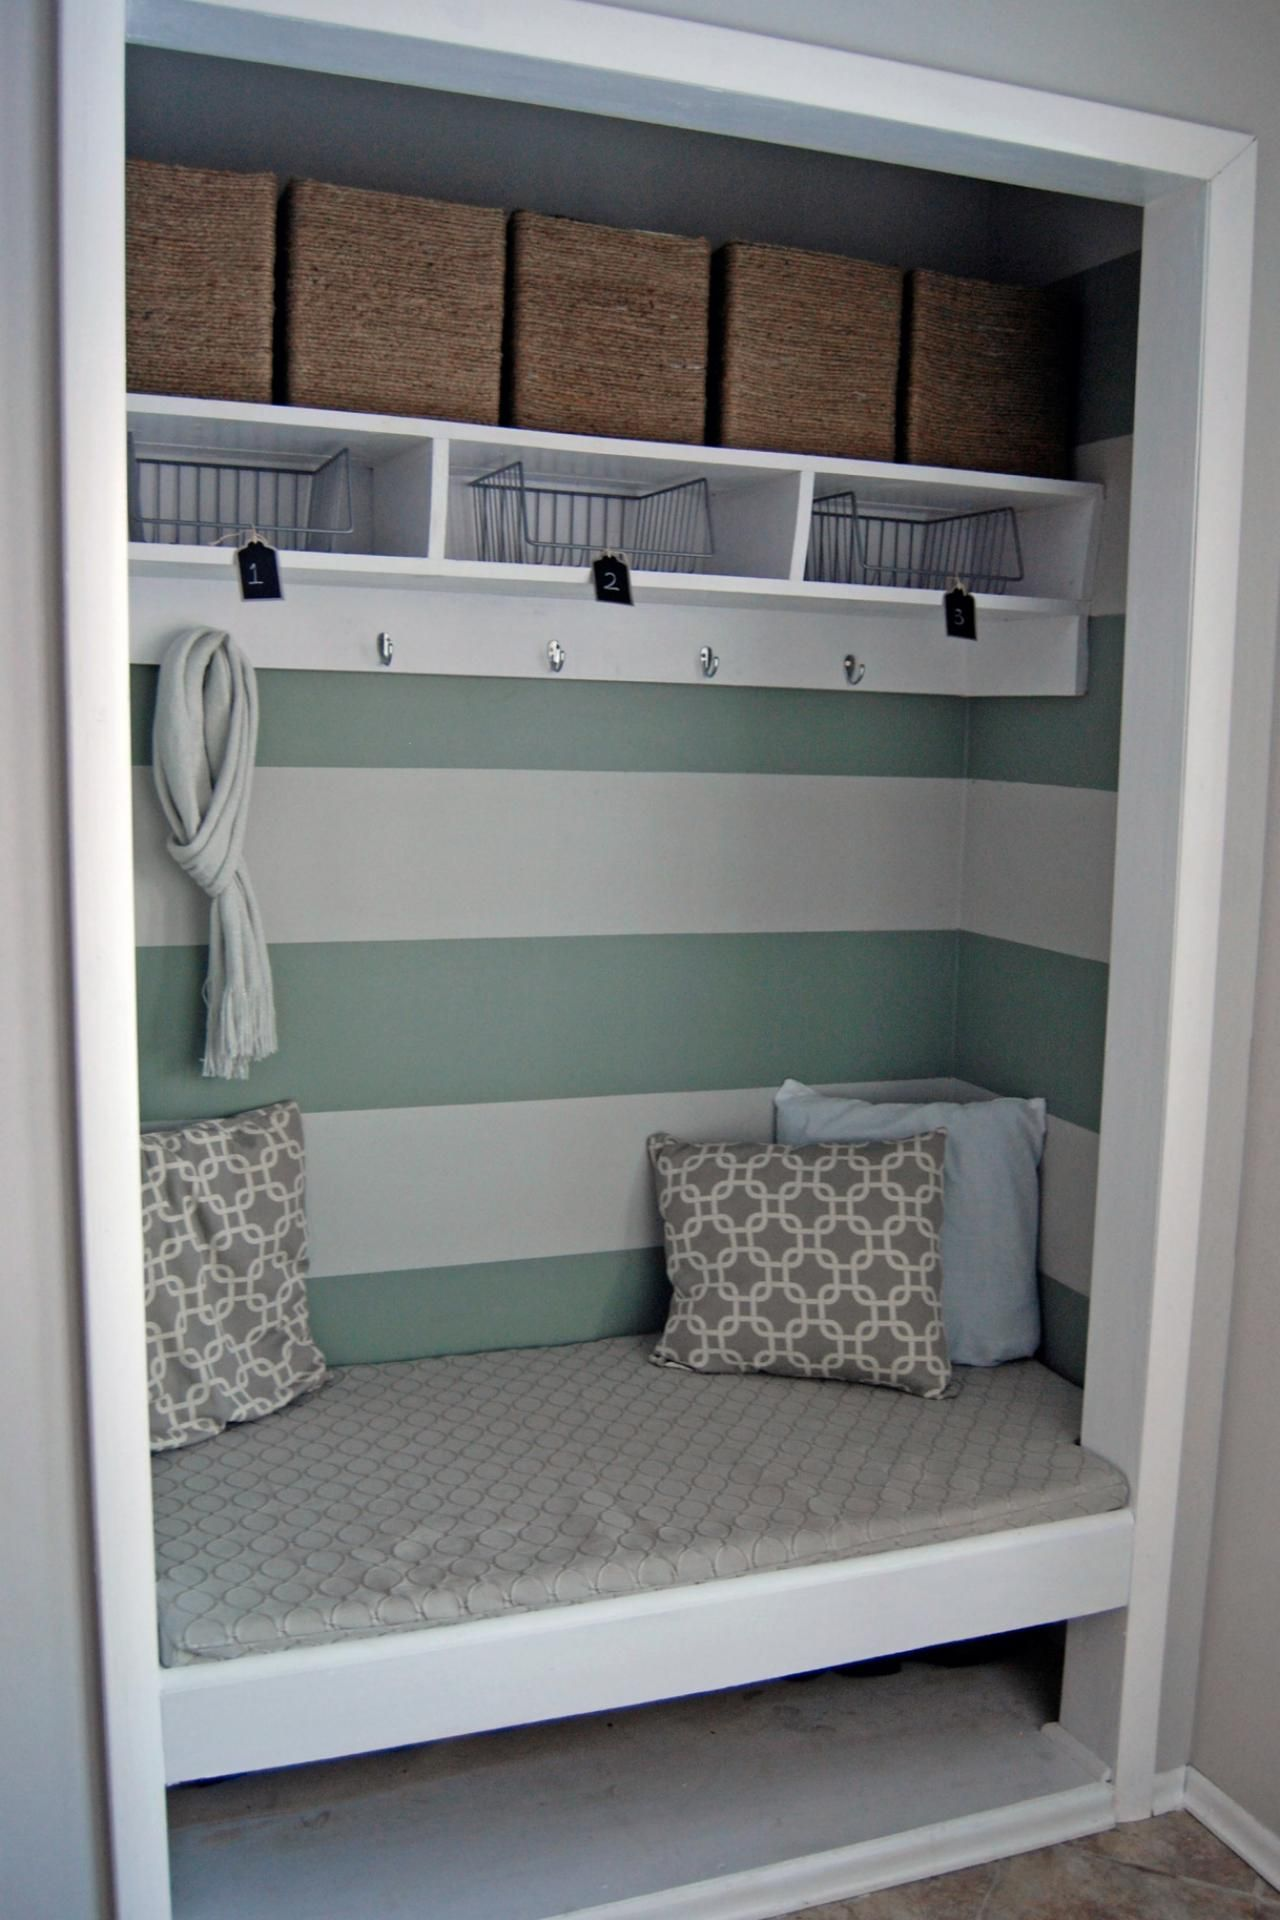 Hallway closet door  Bifold Closet Doors Options and Replacement  Remodeling a house